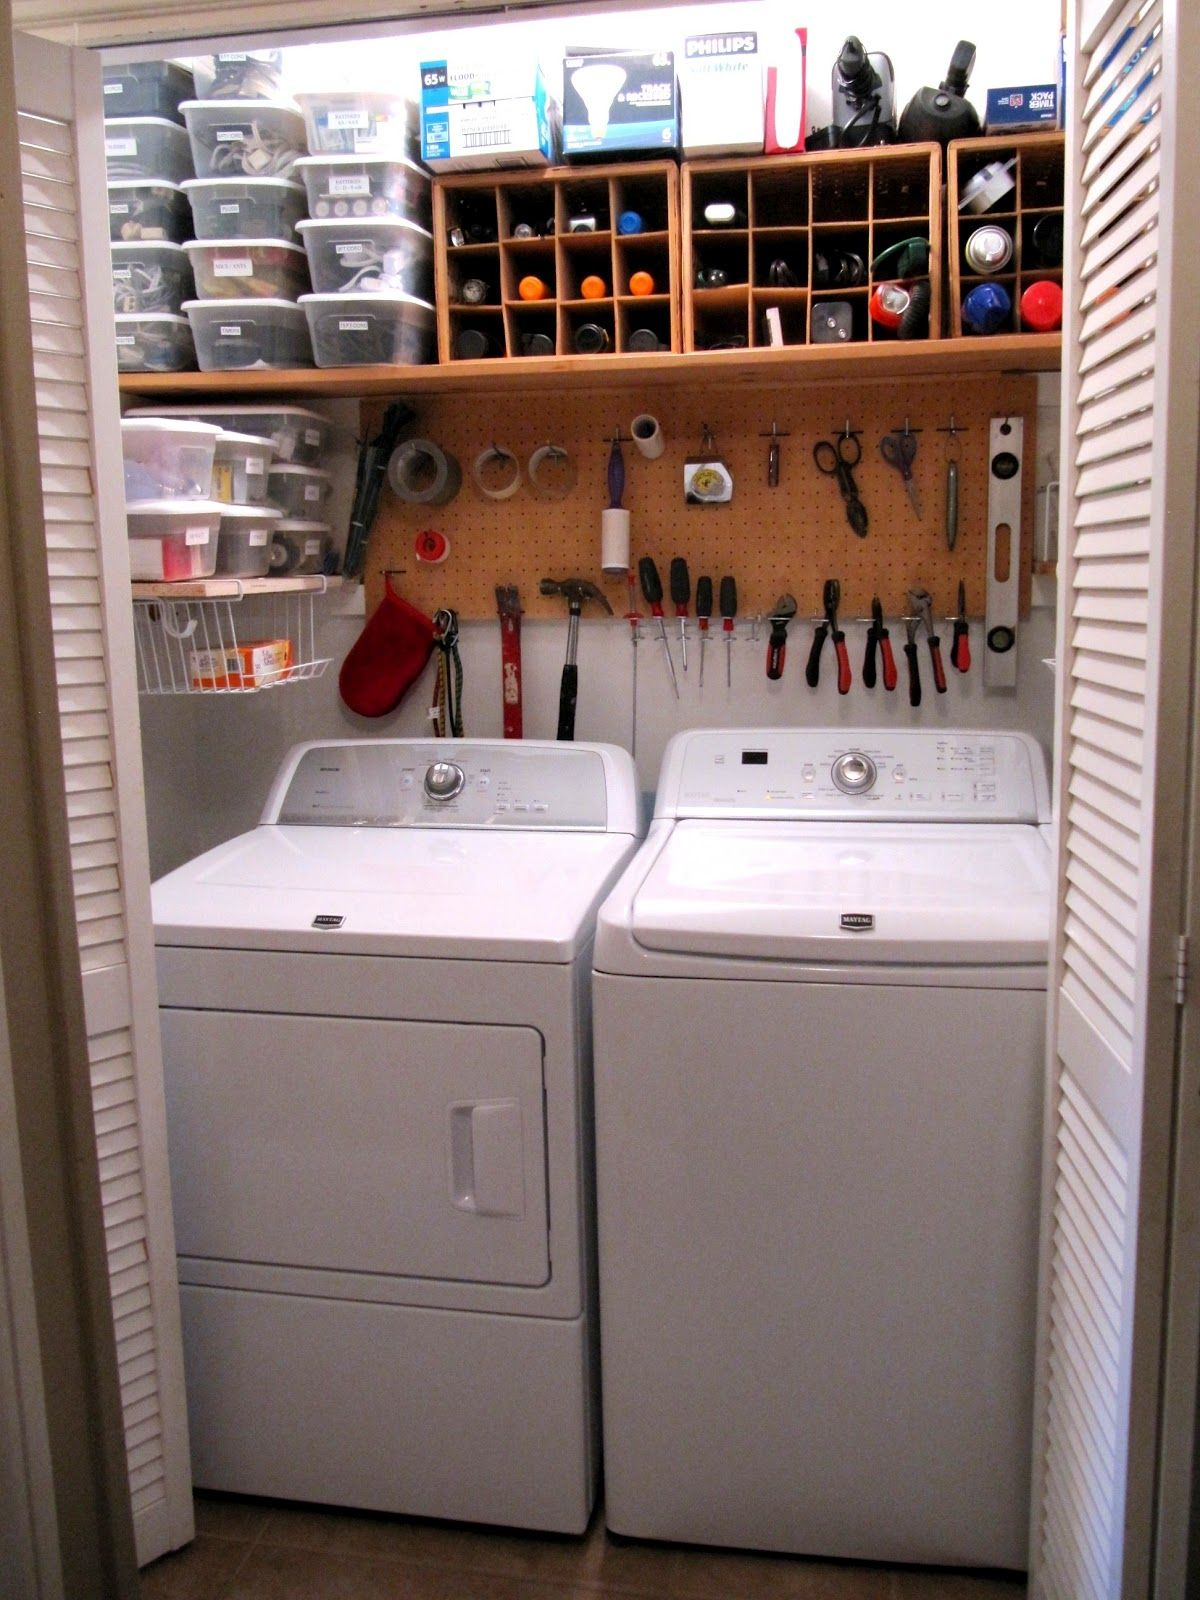 Laundry room tool shed My new place has a laundry room very similar